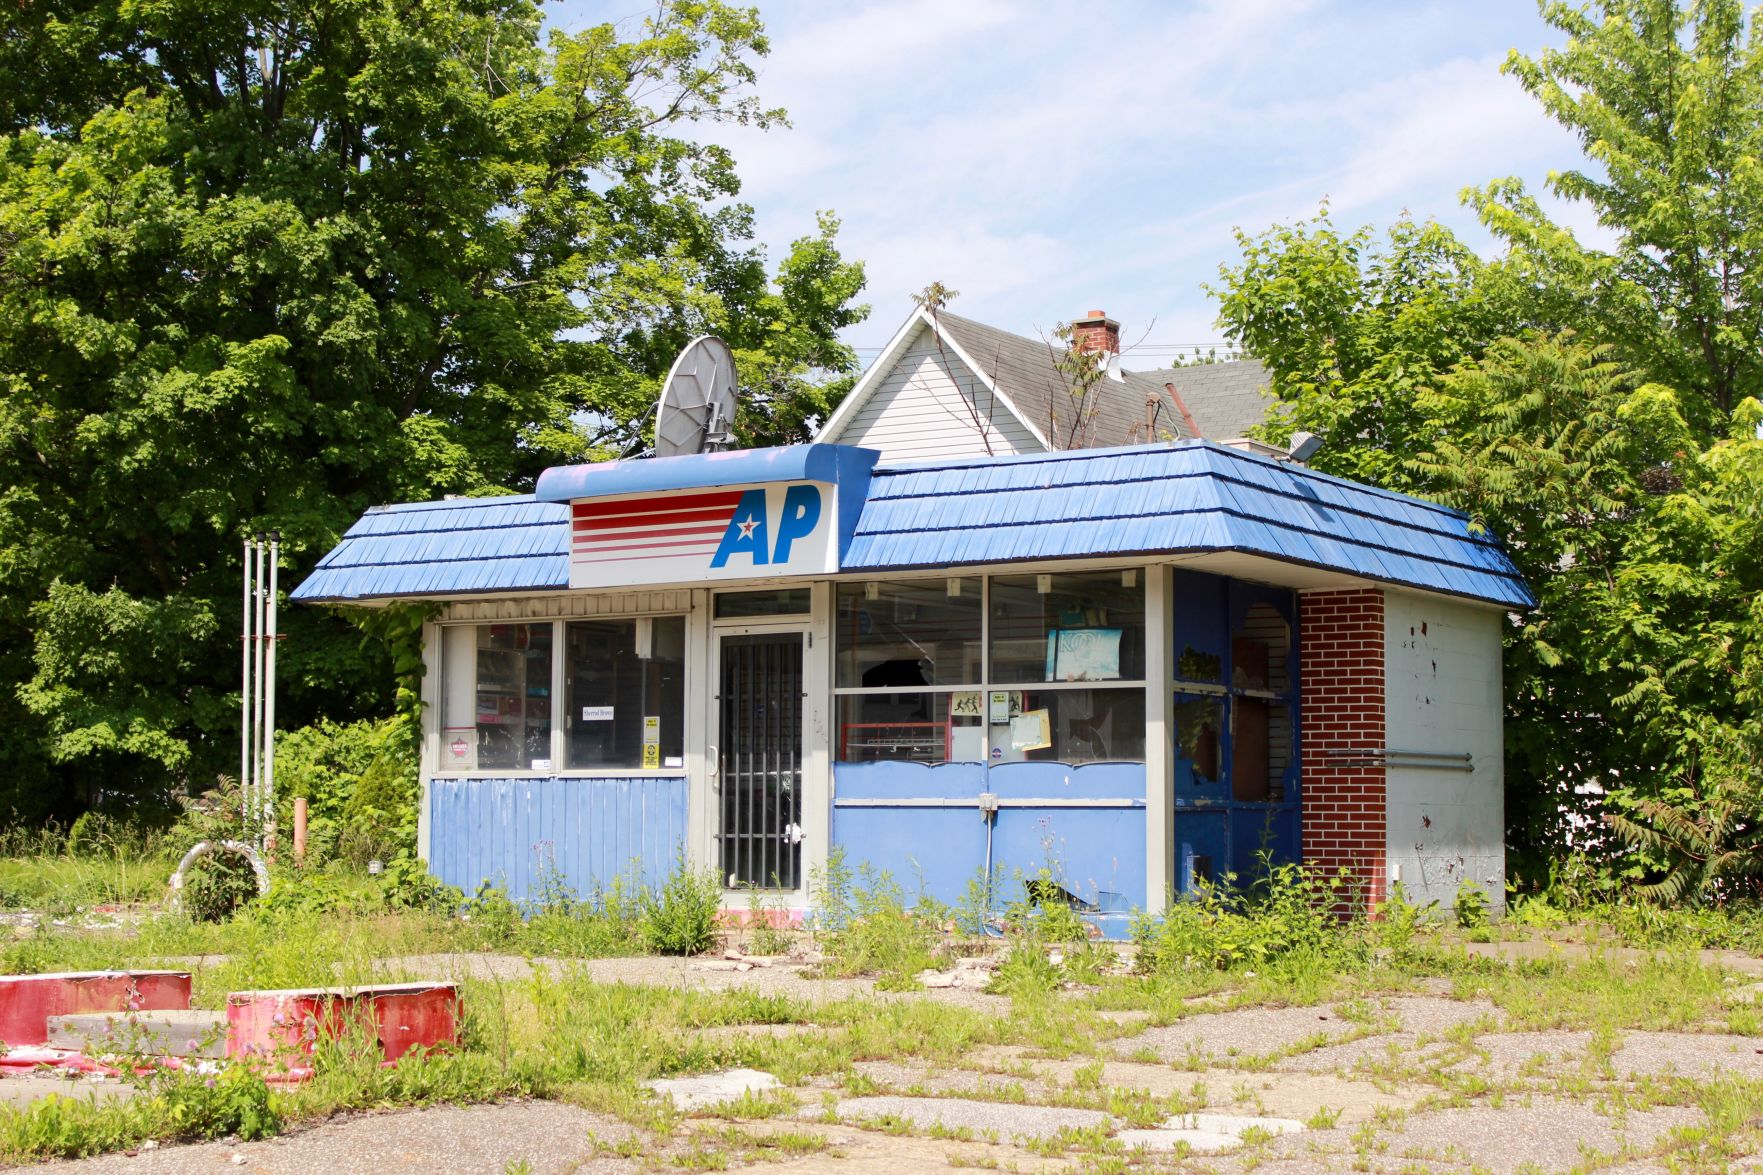 State Grant To Help Fund Clean Up Of Abandoned Gas Station News Richlandsource Com